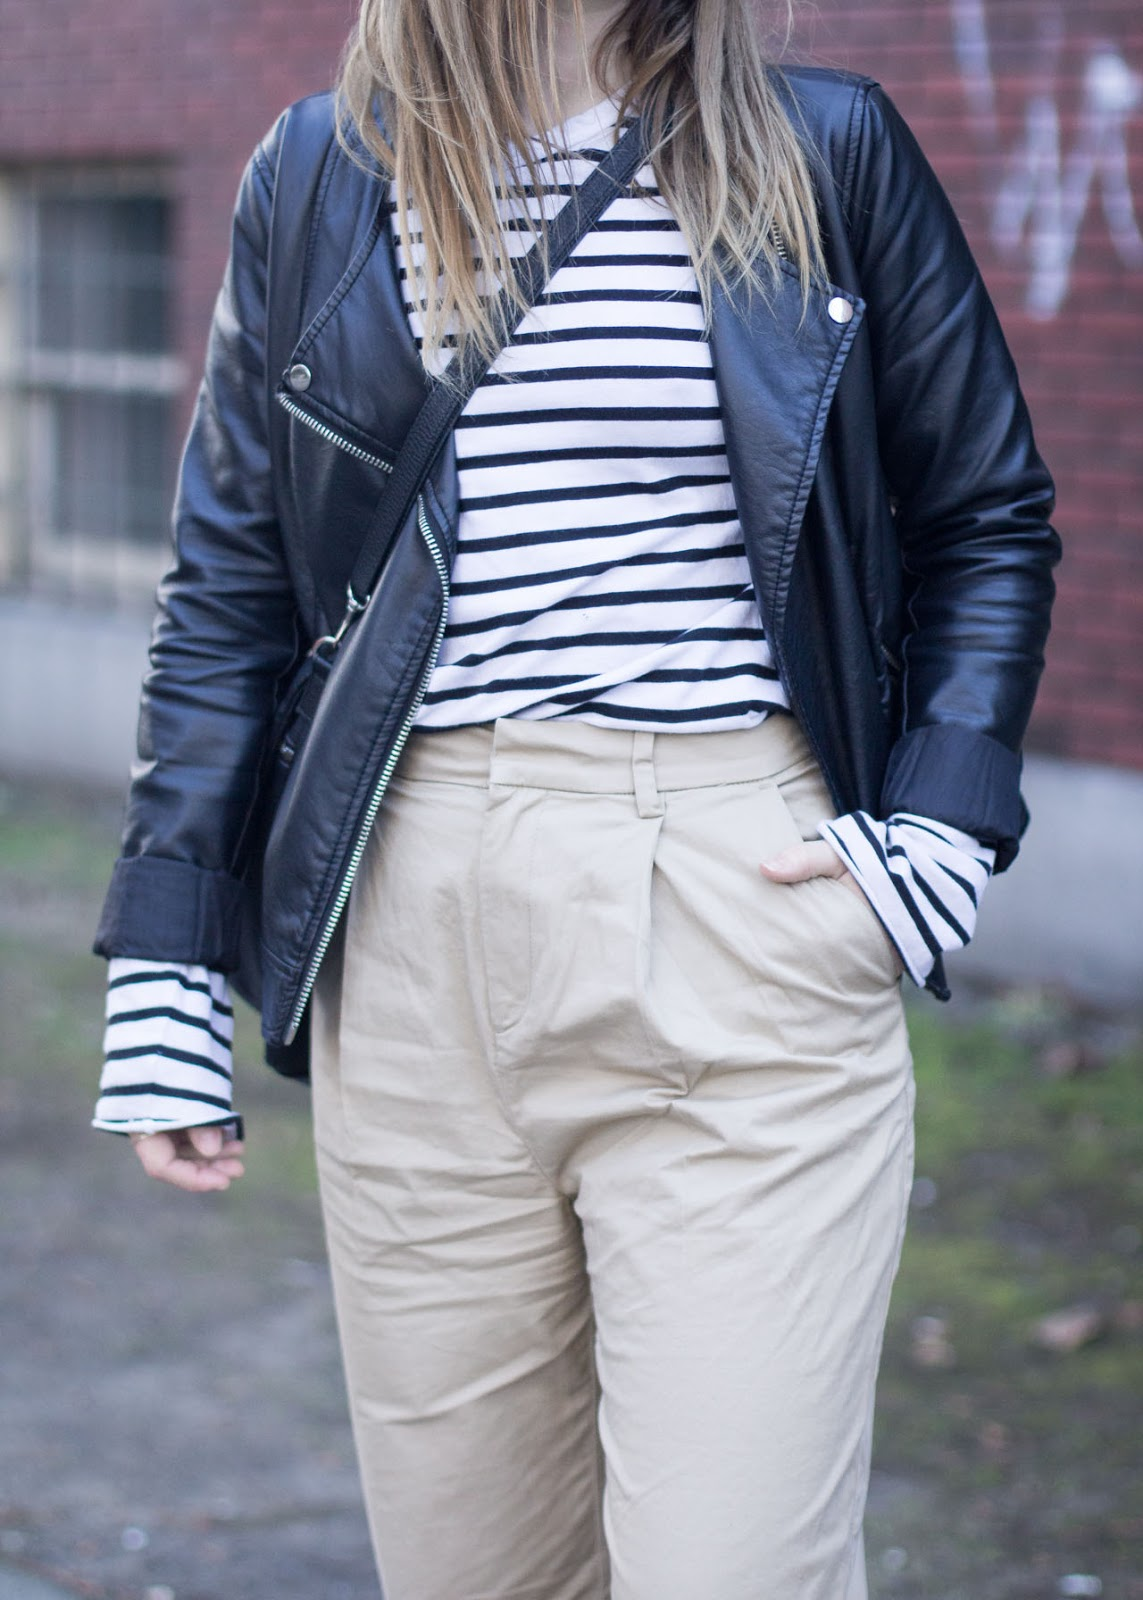 new Spring trousers - khakis - chinos - Outfit - Vancouver Fashion Blogger